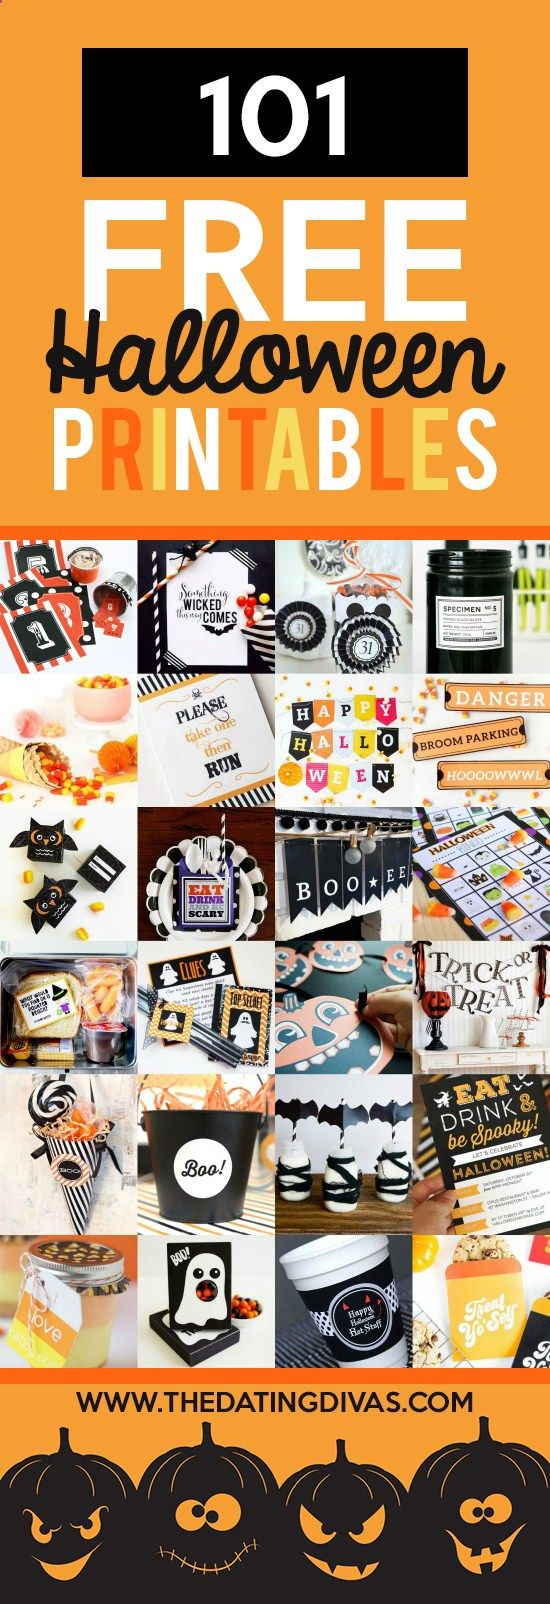 Including Printable Halloween Decorations Cute Halloween Gifts